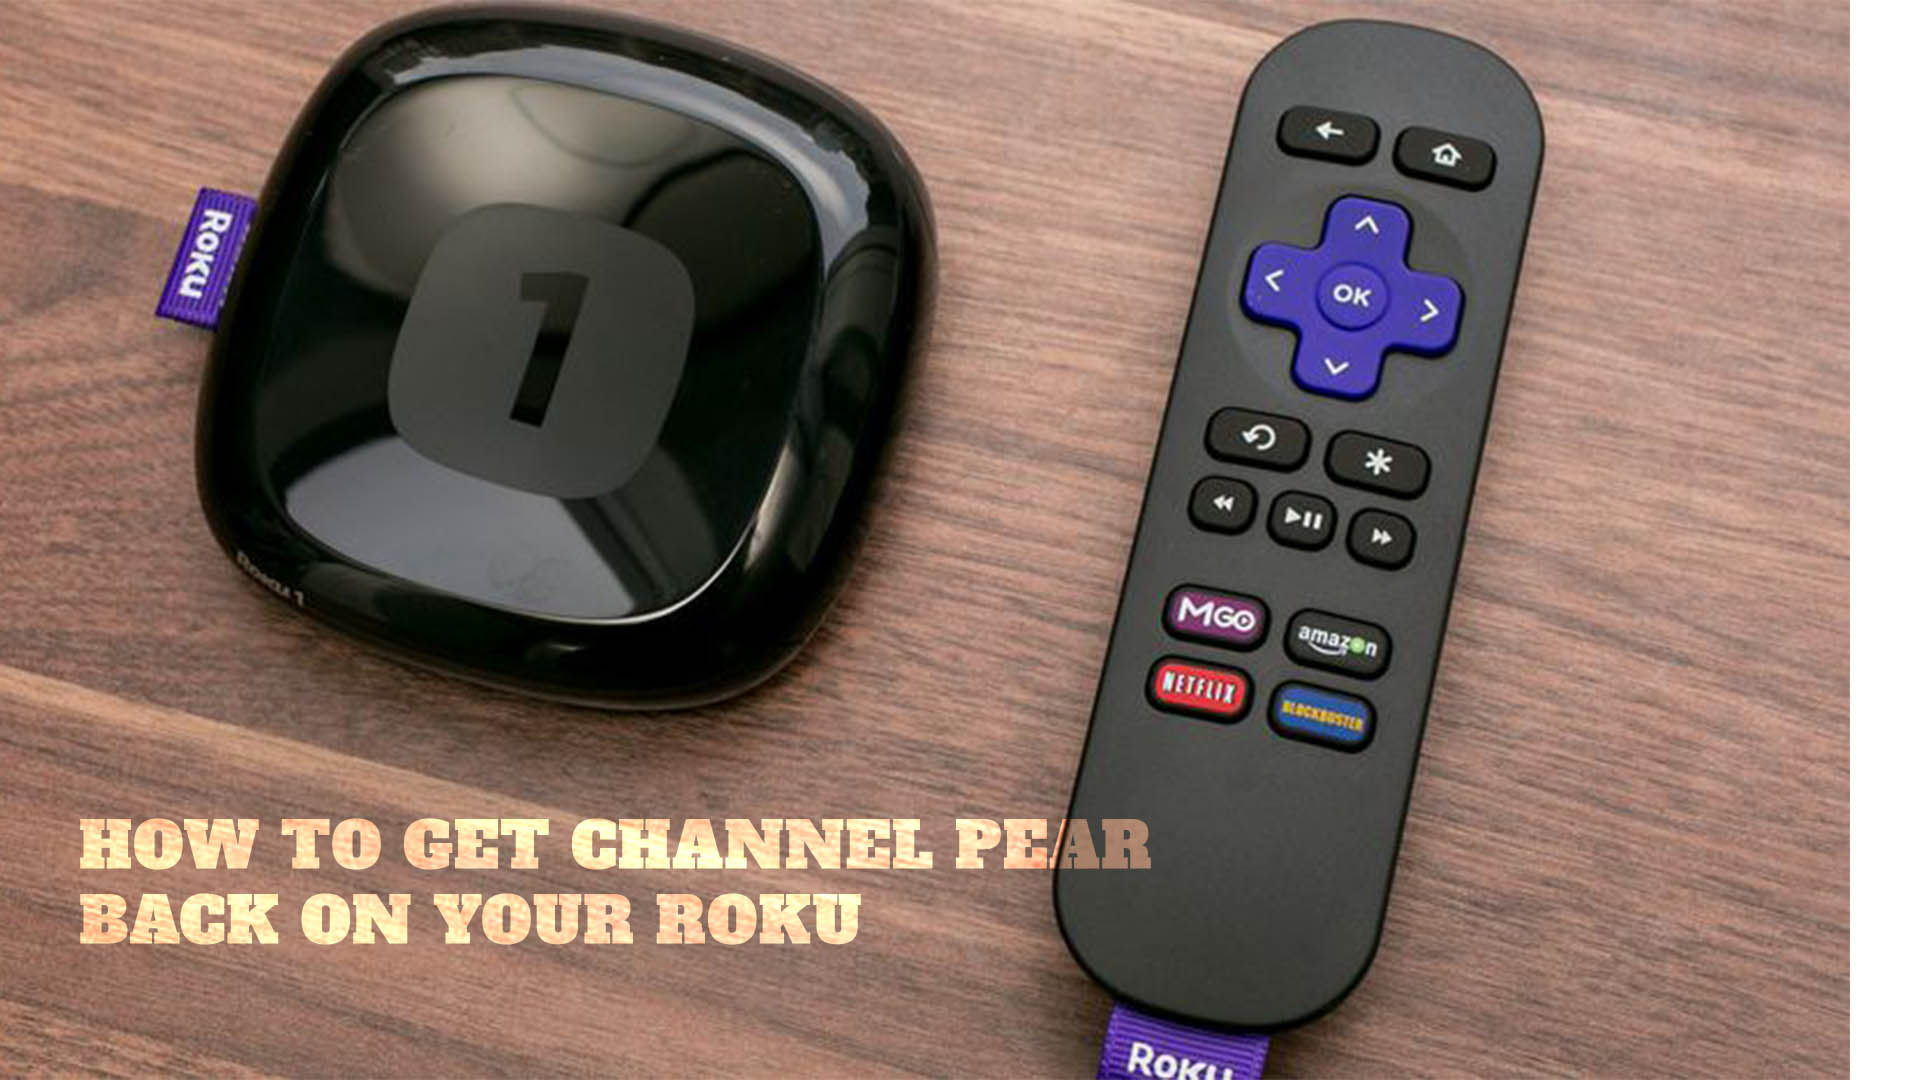 How to Get Channel Pear Back on Your Roku